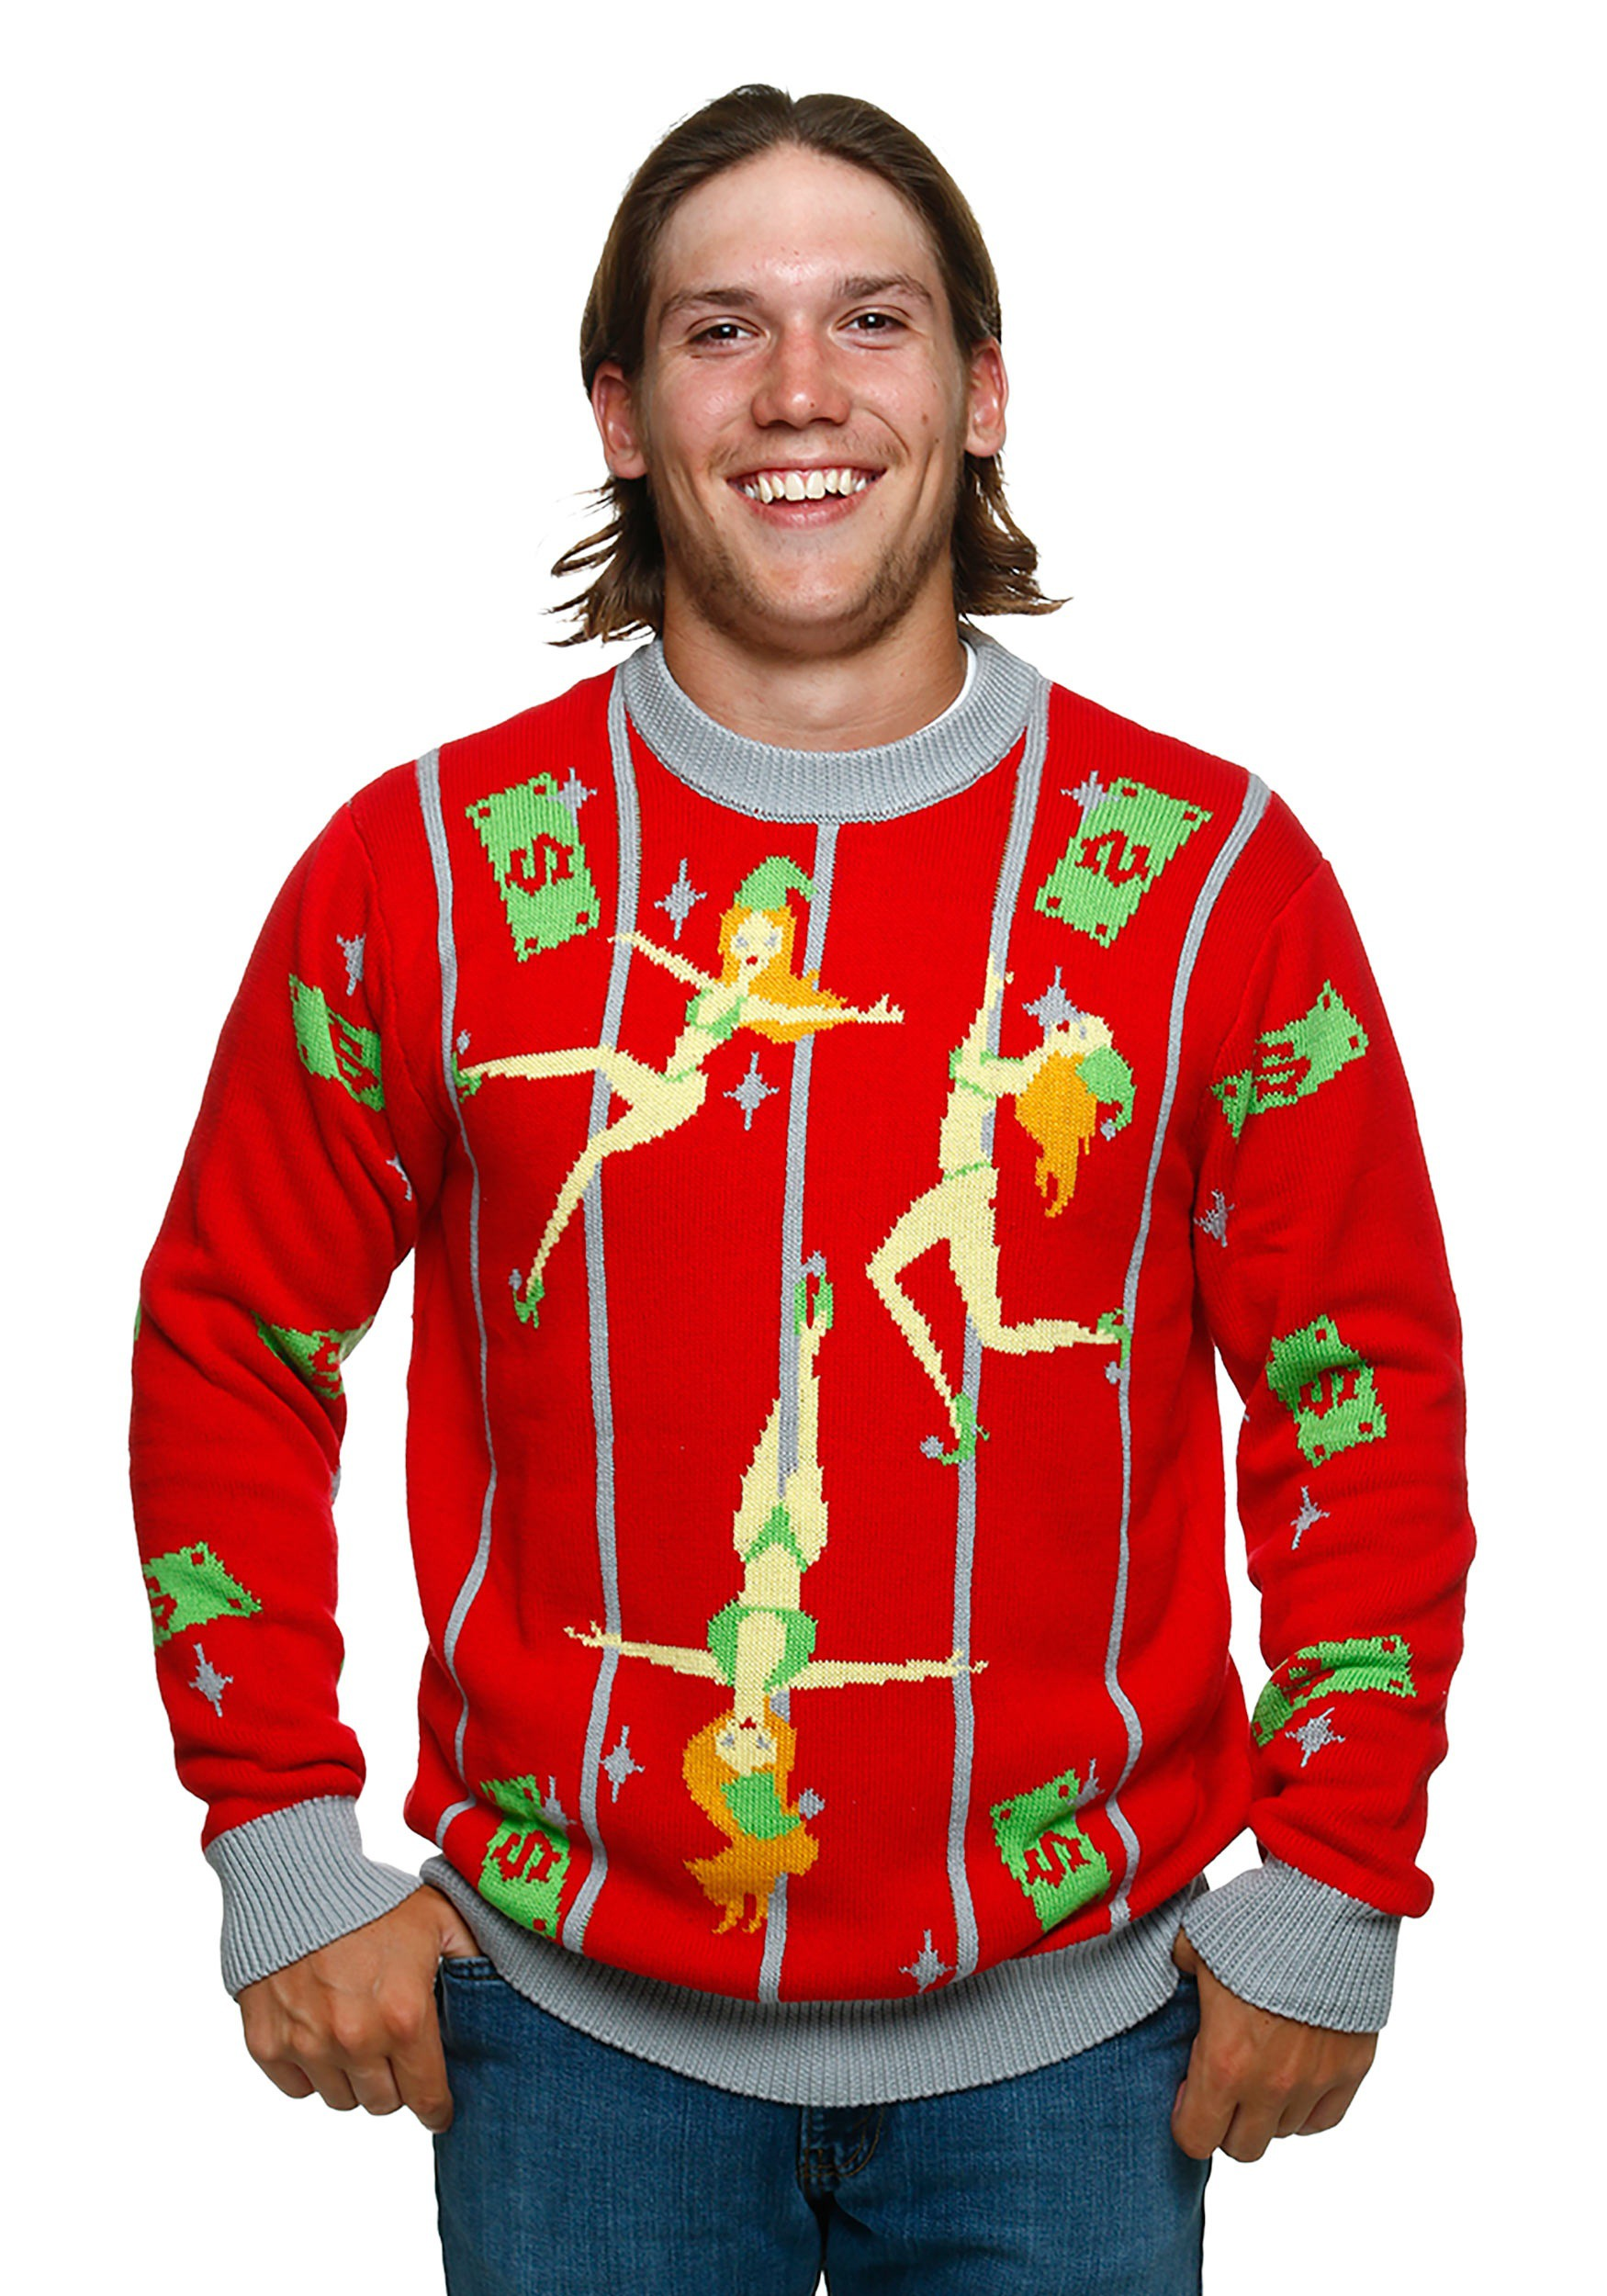 pole dancing elves ugly christmas sweater - Best Place To Buy Ugly Christmas Sweaters